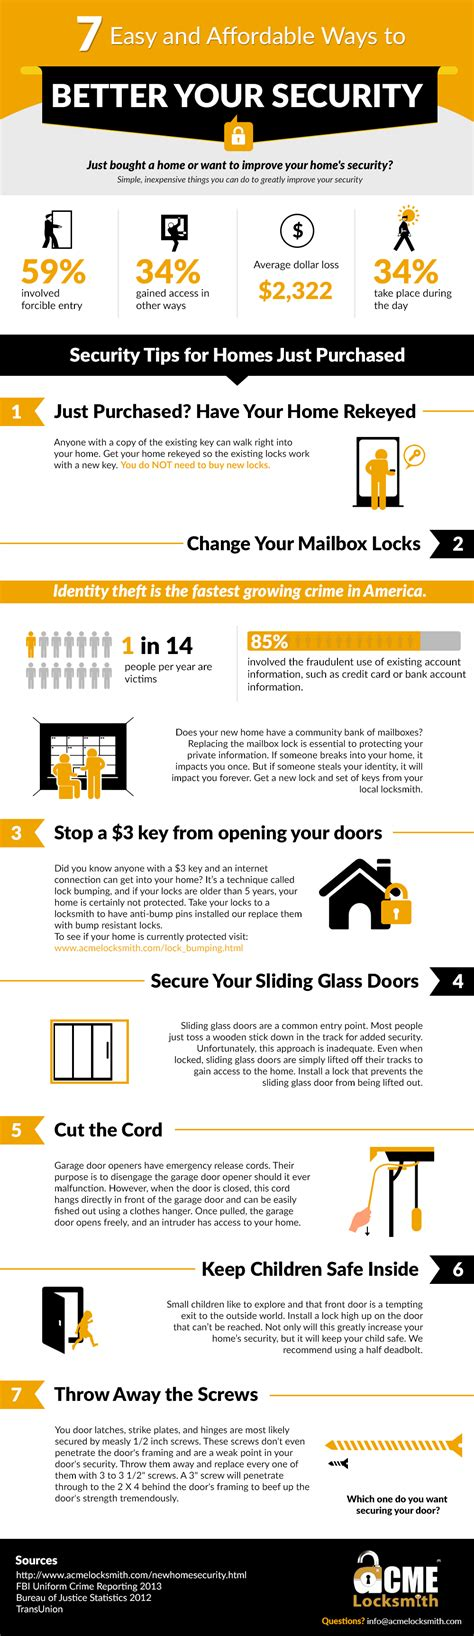 7 cheap and easy ways to improve your home security